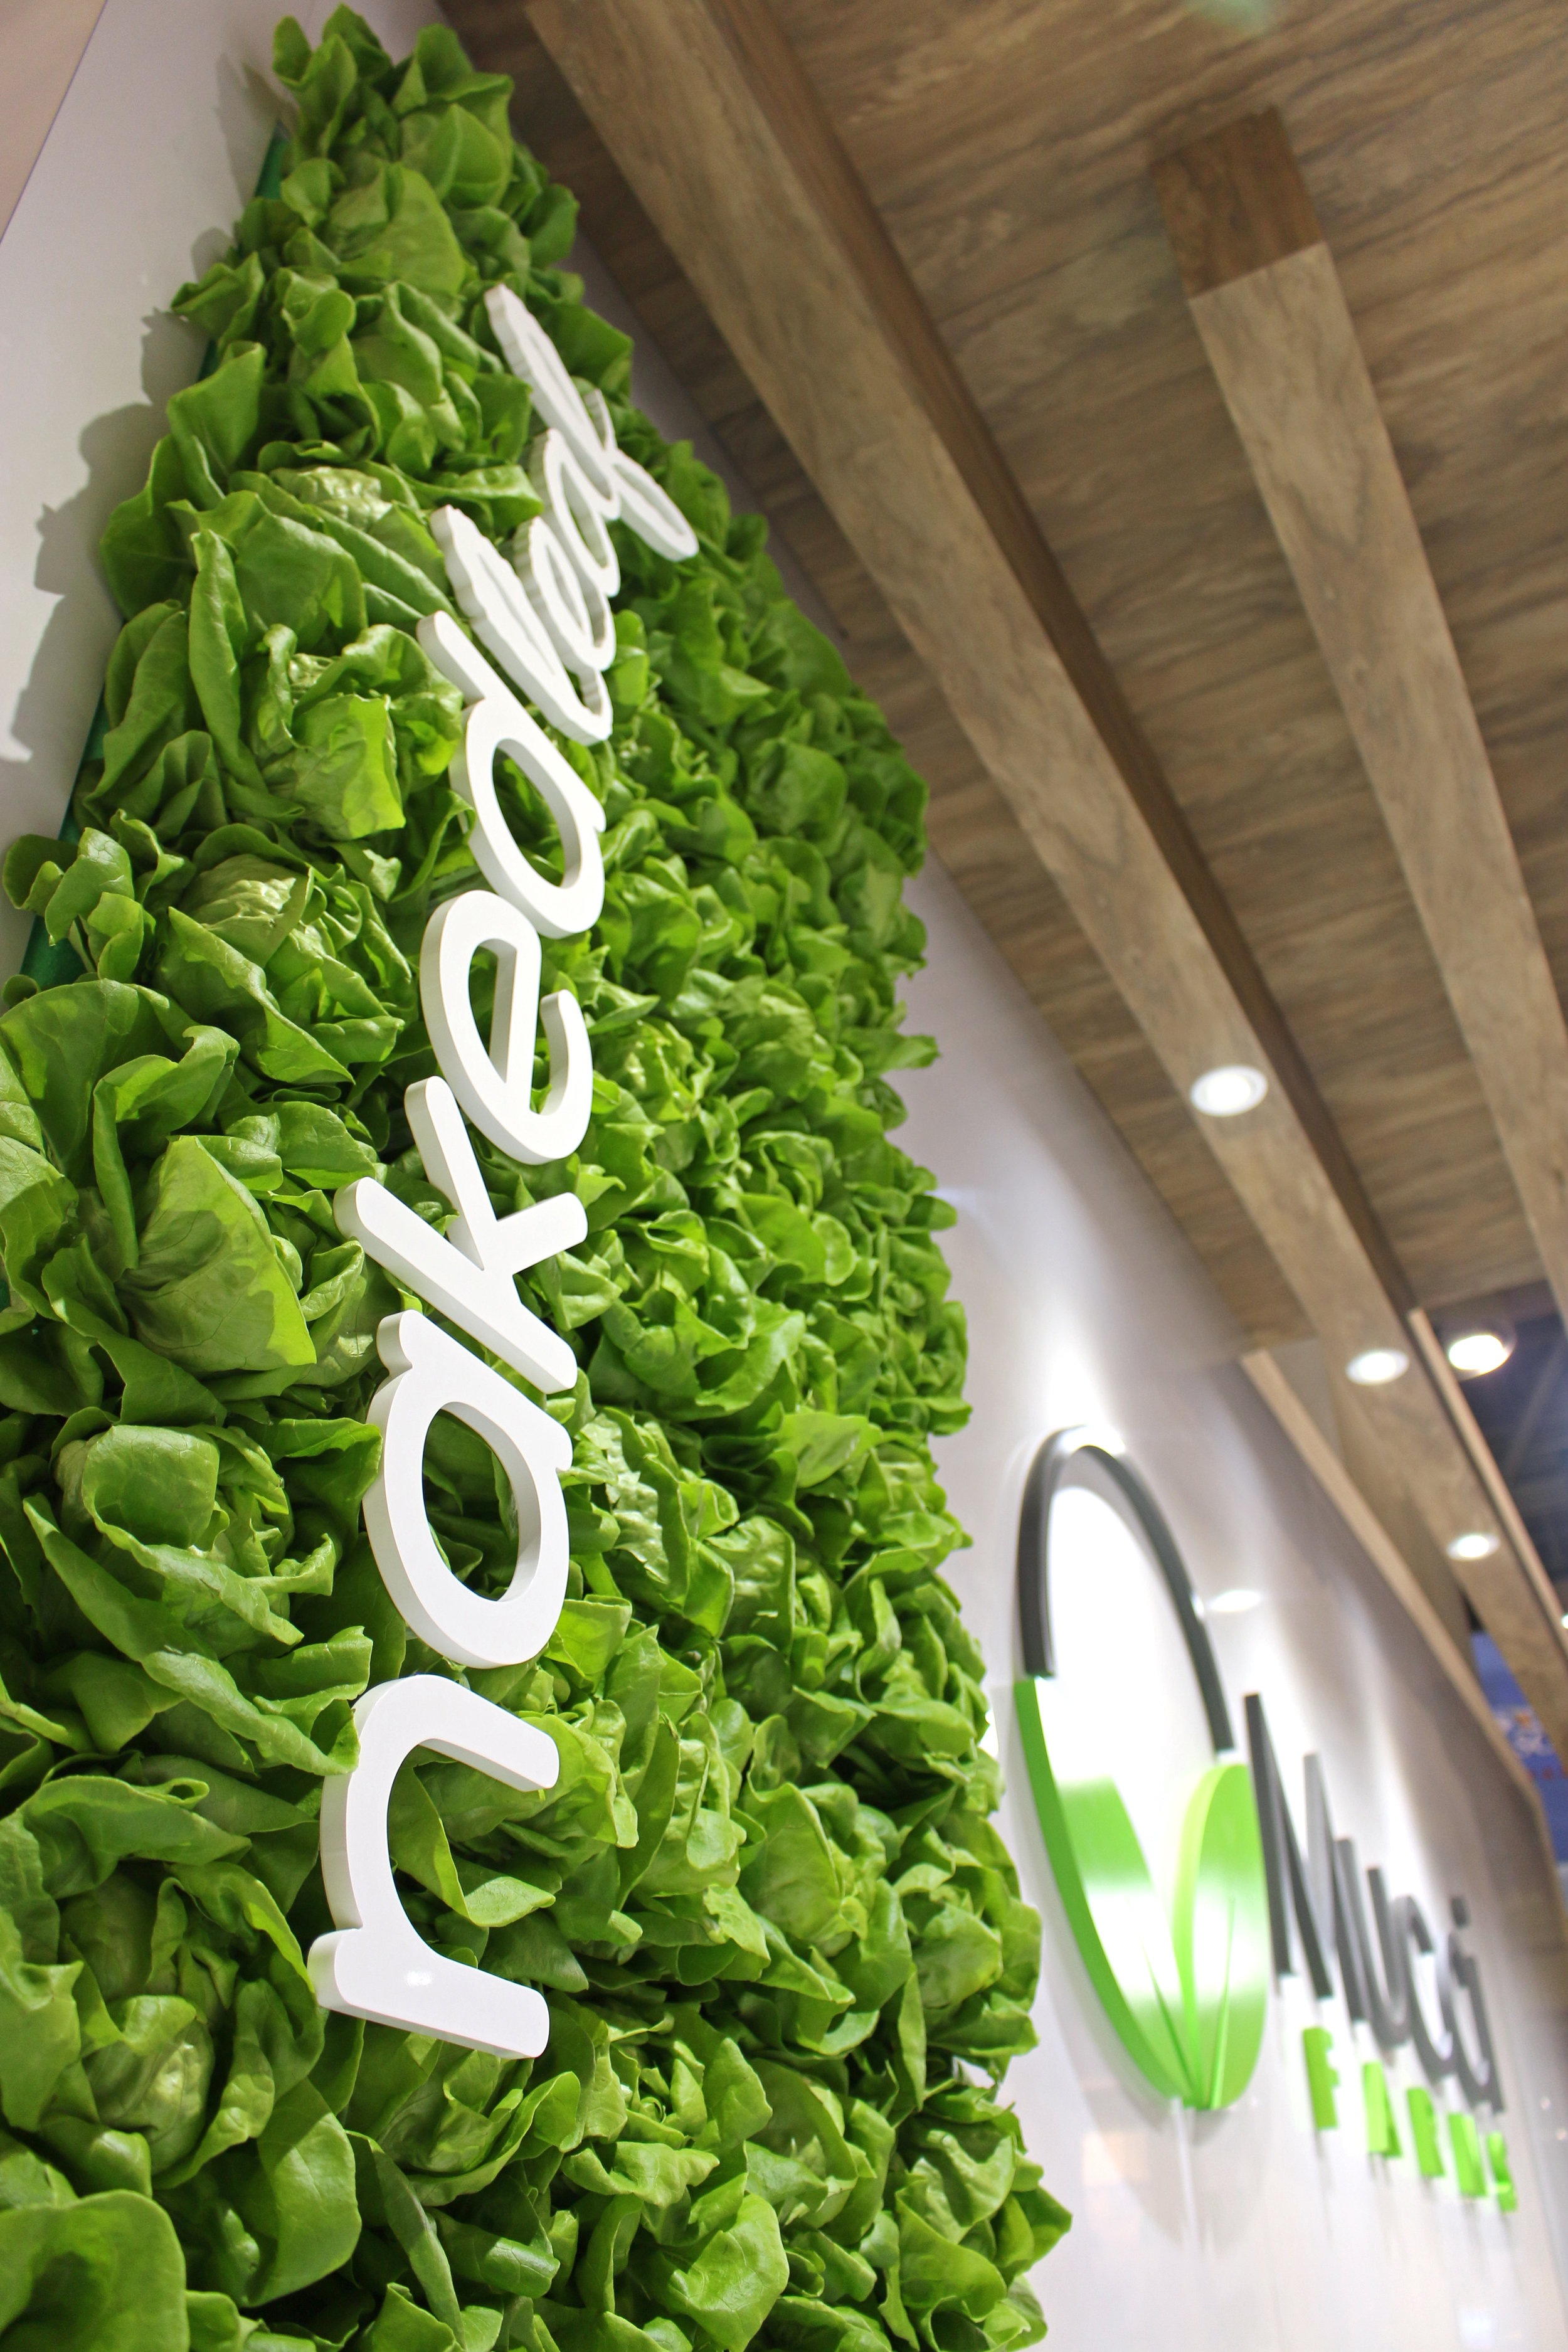 3-D LETTERING & LETTUCE WALL   16-foot-high towers provide the perfect backdrop for the use of dimensional lettering. Even at eye level the use of 3D logos is striking and contributes to the layers and depth of their design. We also integrated a custom wall featuring their 'Naked Leaf' living lettuce in water, with a painted acrylic logo nested within the leaves.